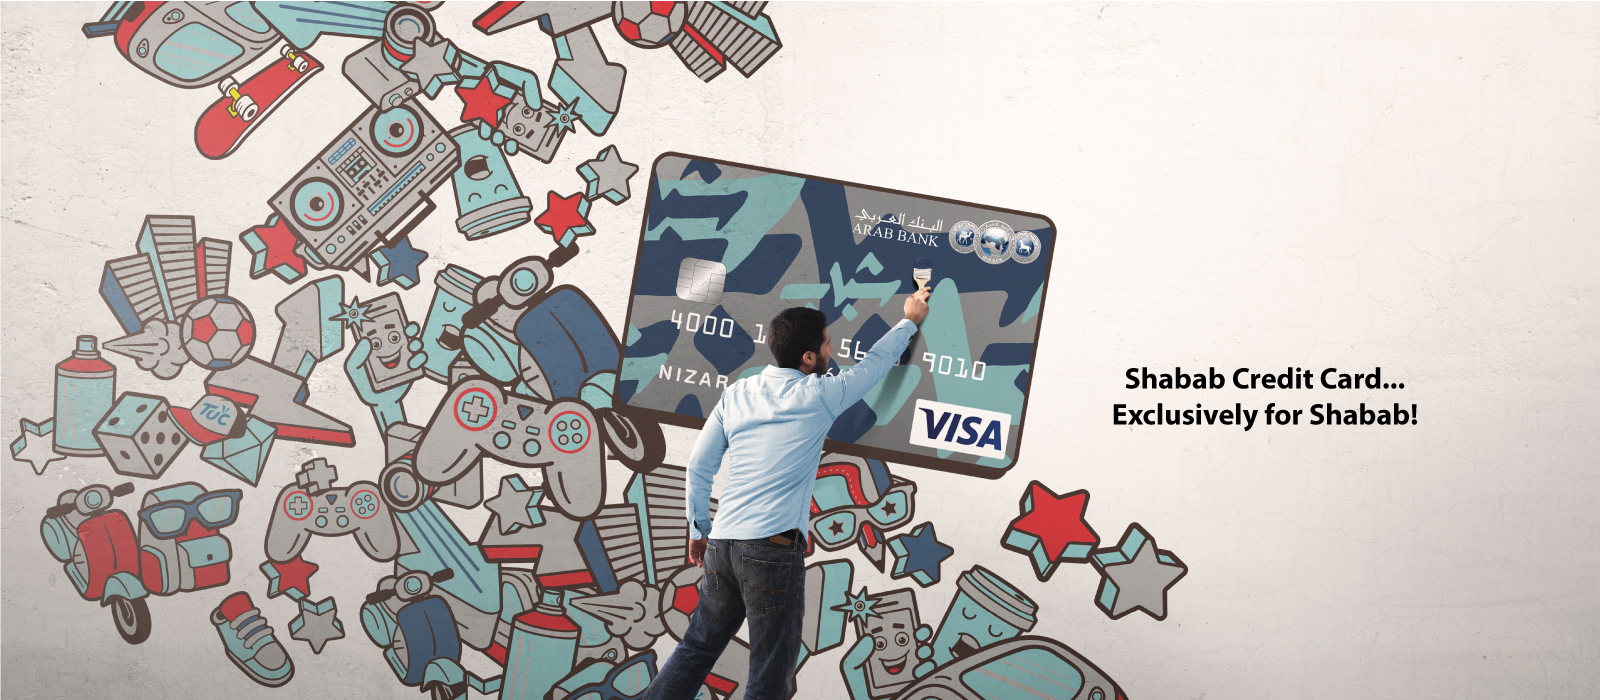 Shabab-Credit-Card-1600x700-amend3-E